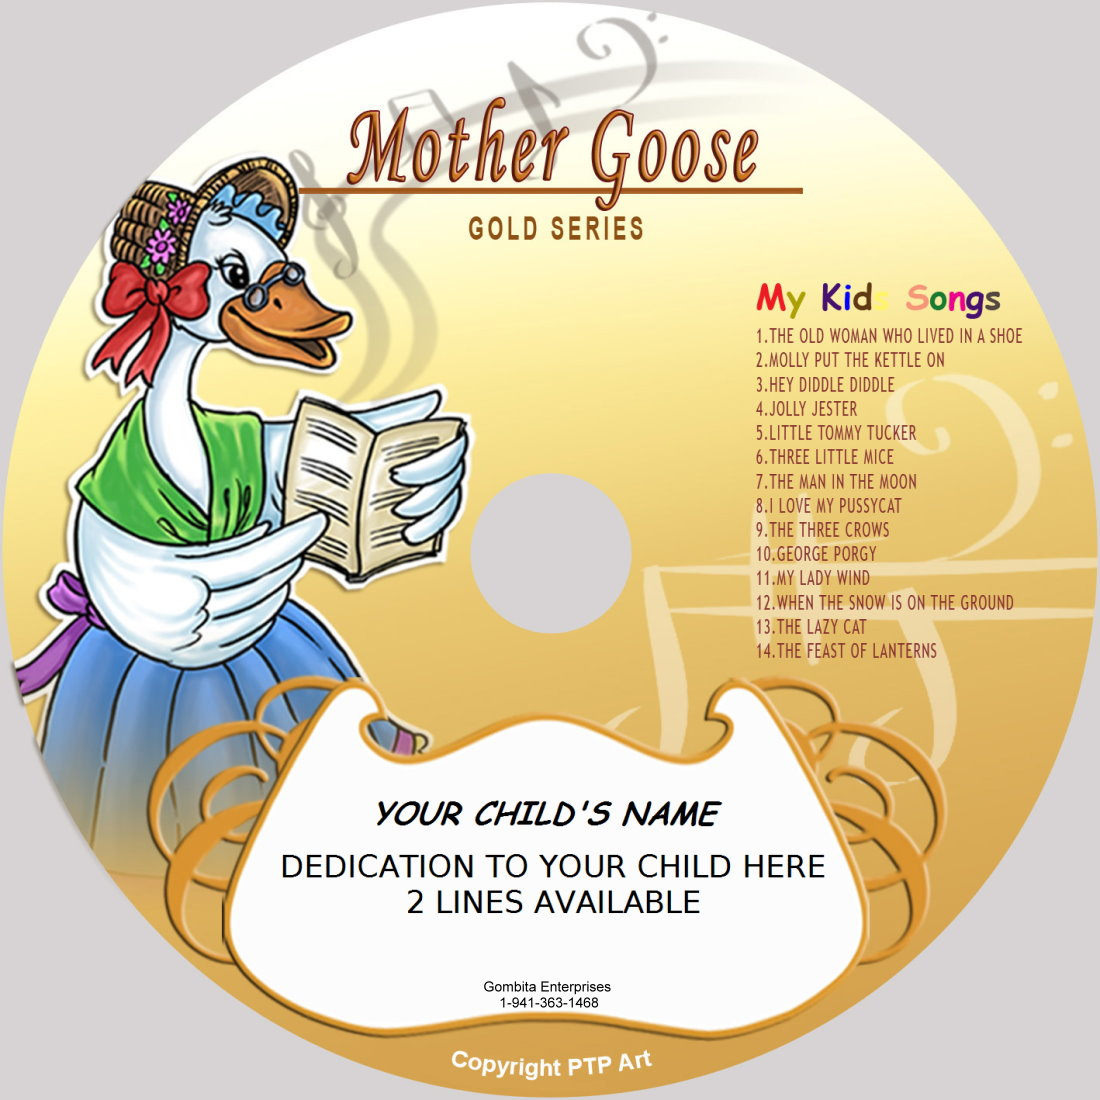 Mother Goose (Gold) - My Kids Songs - CD Disk & MP3 Download